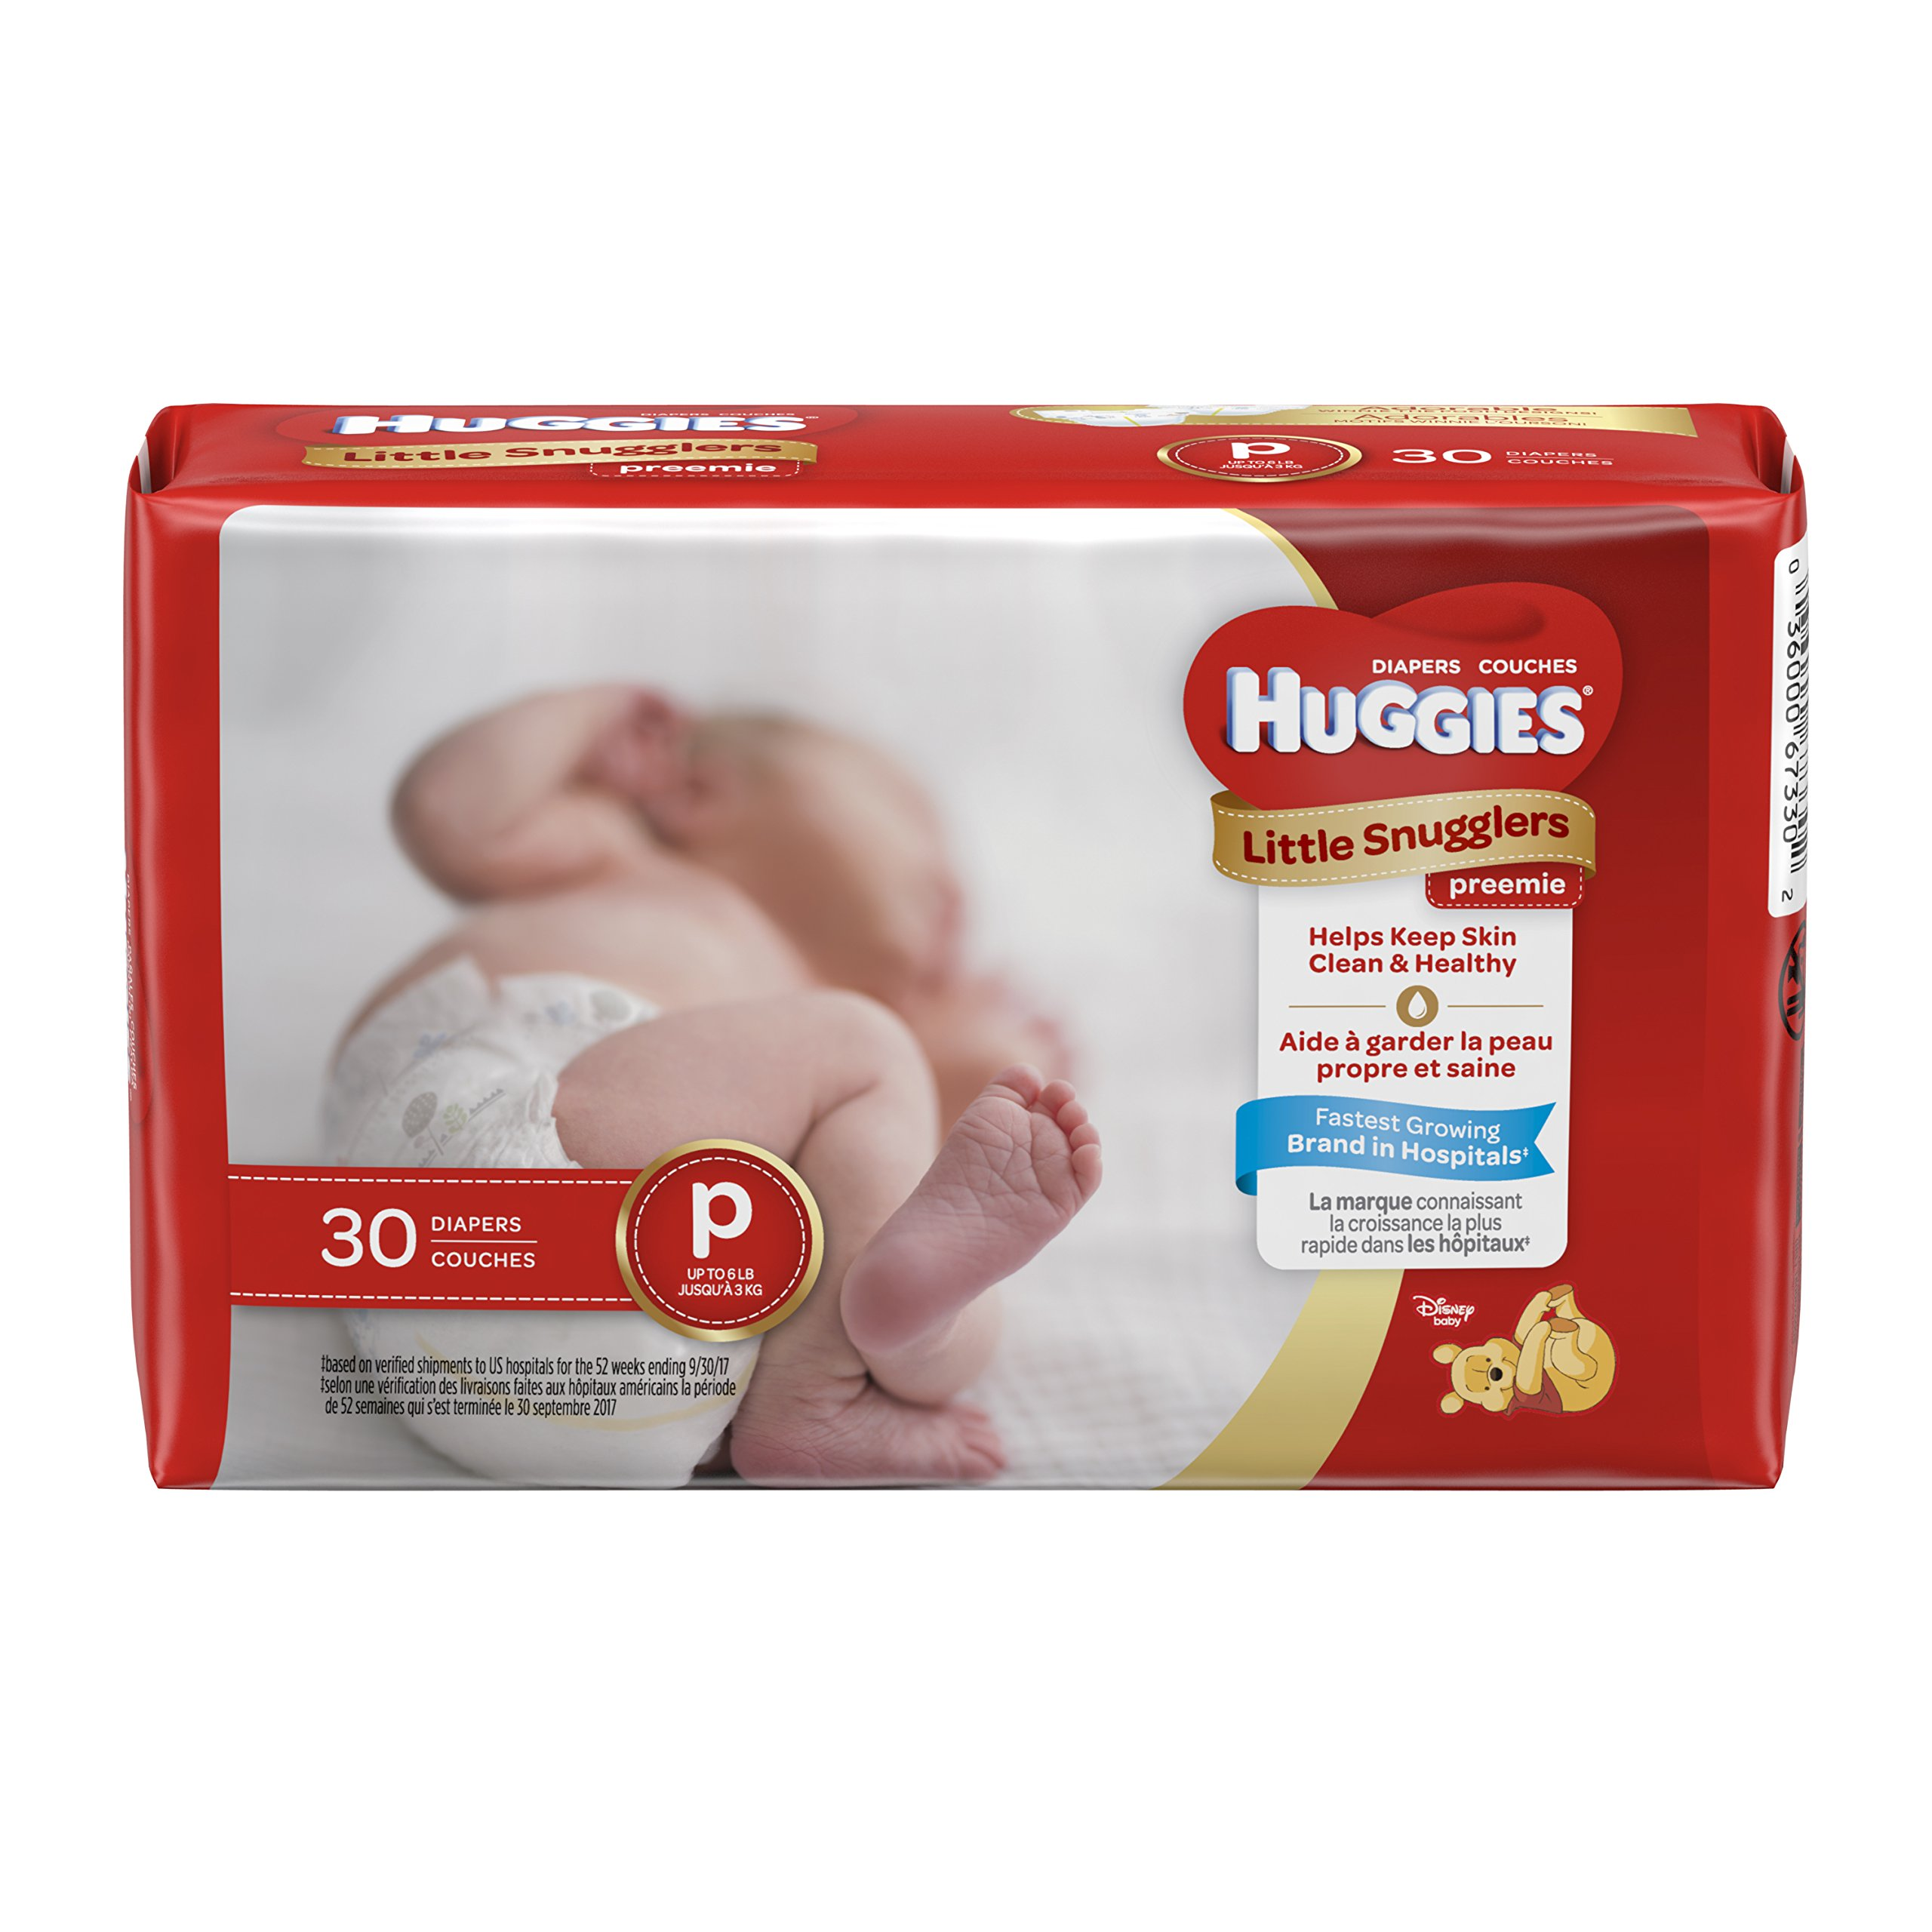 HUGGIES Little Snugglers Baby Diapers, Size Preemie, 30 Count, CONVENIENCE PACK (Packaging